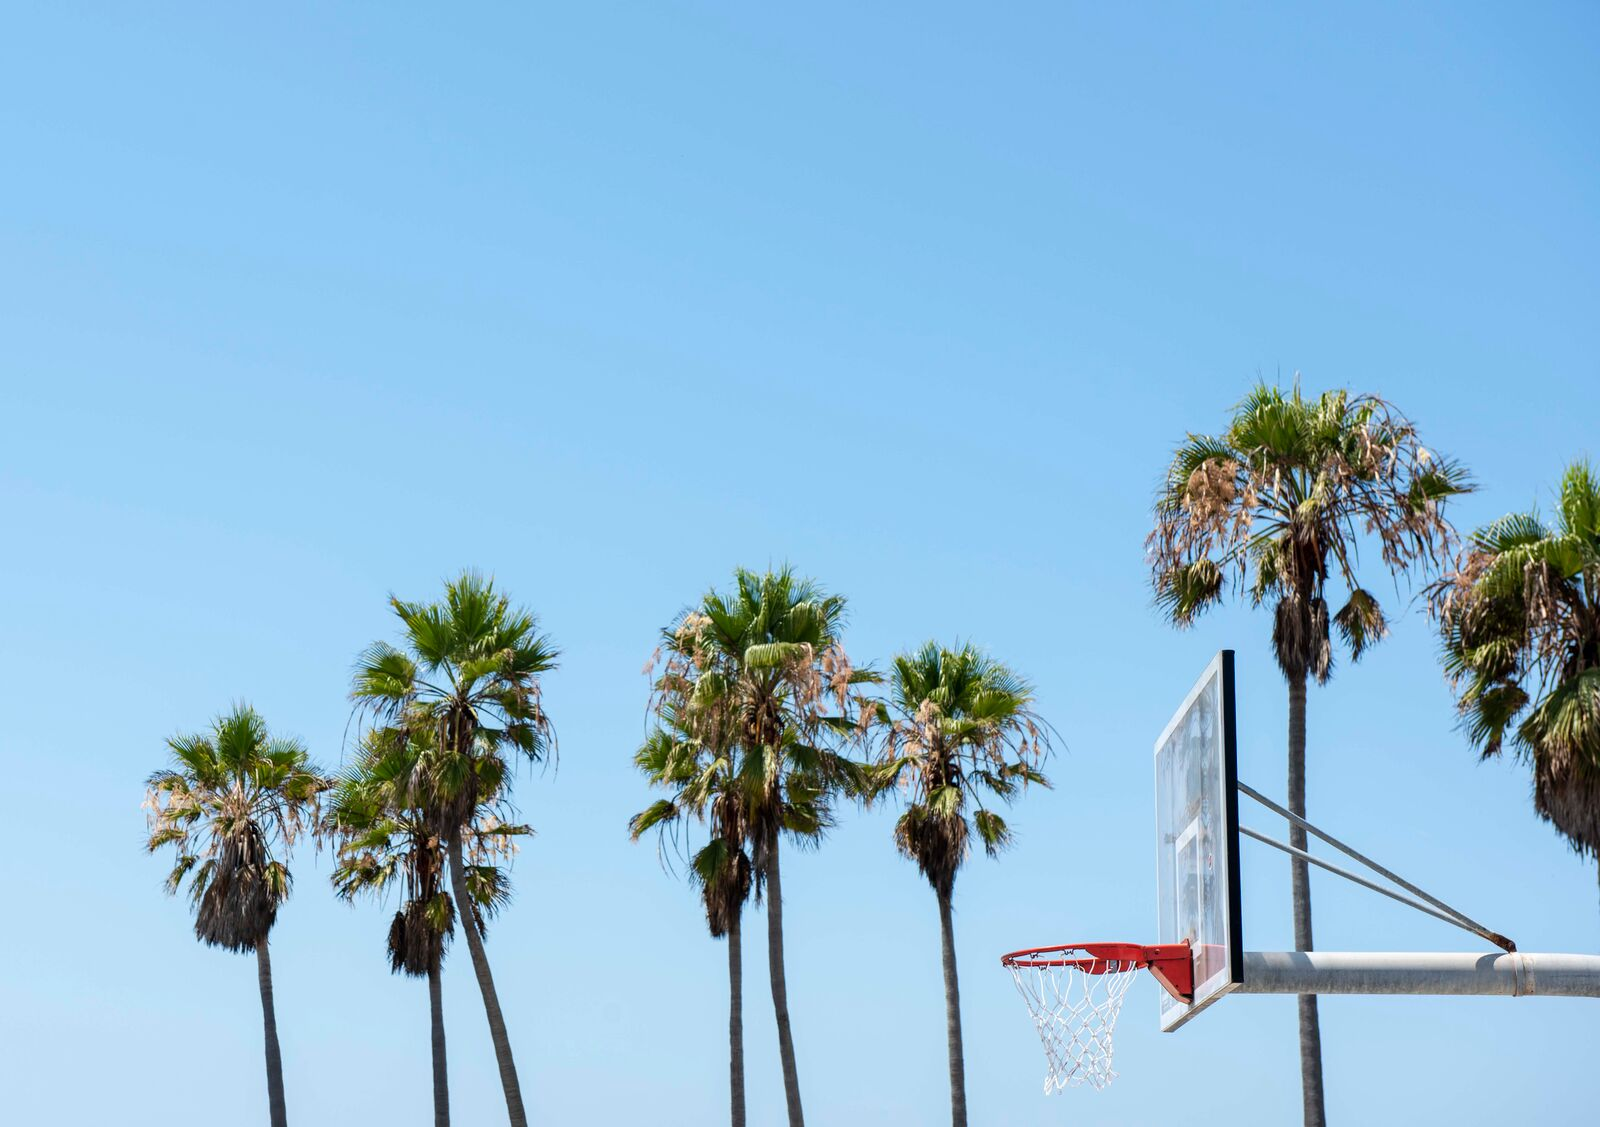 Backboard with palm trees in background